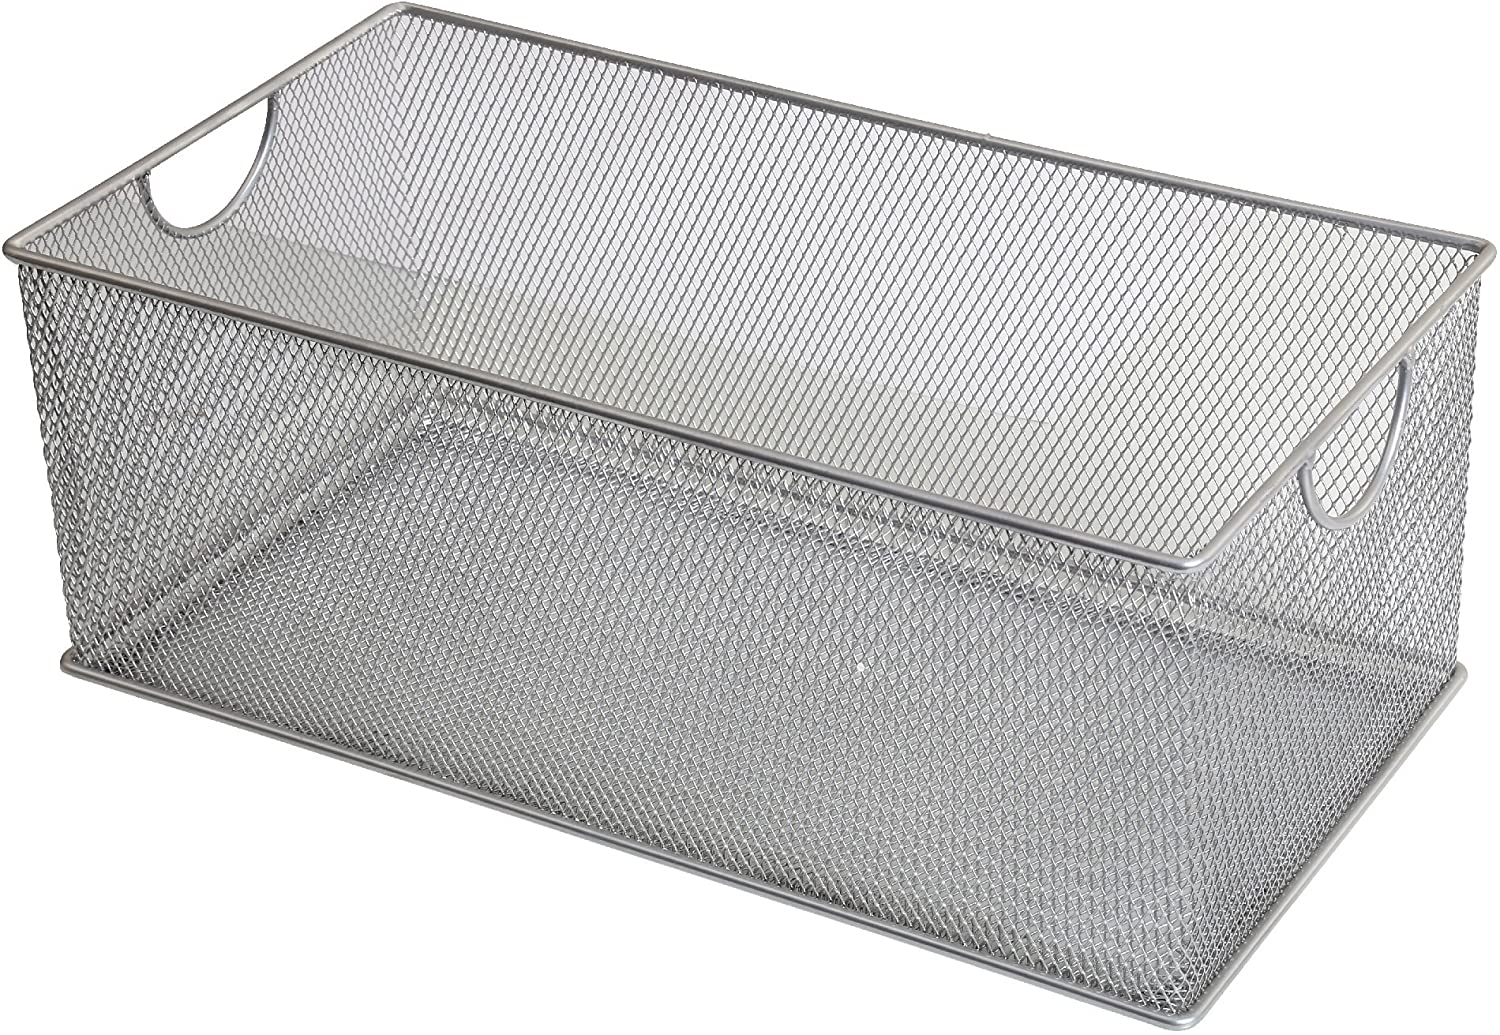 Charmant Amazon.com: Ybm Home Mesh Storage Box, Silver Mesh Great For School Home Or  Office Supplies, Books , Computer Discs And More 2302 (1, Zip Box  8 X 4.5  X 4.8 ...